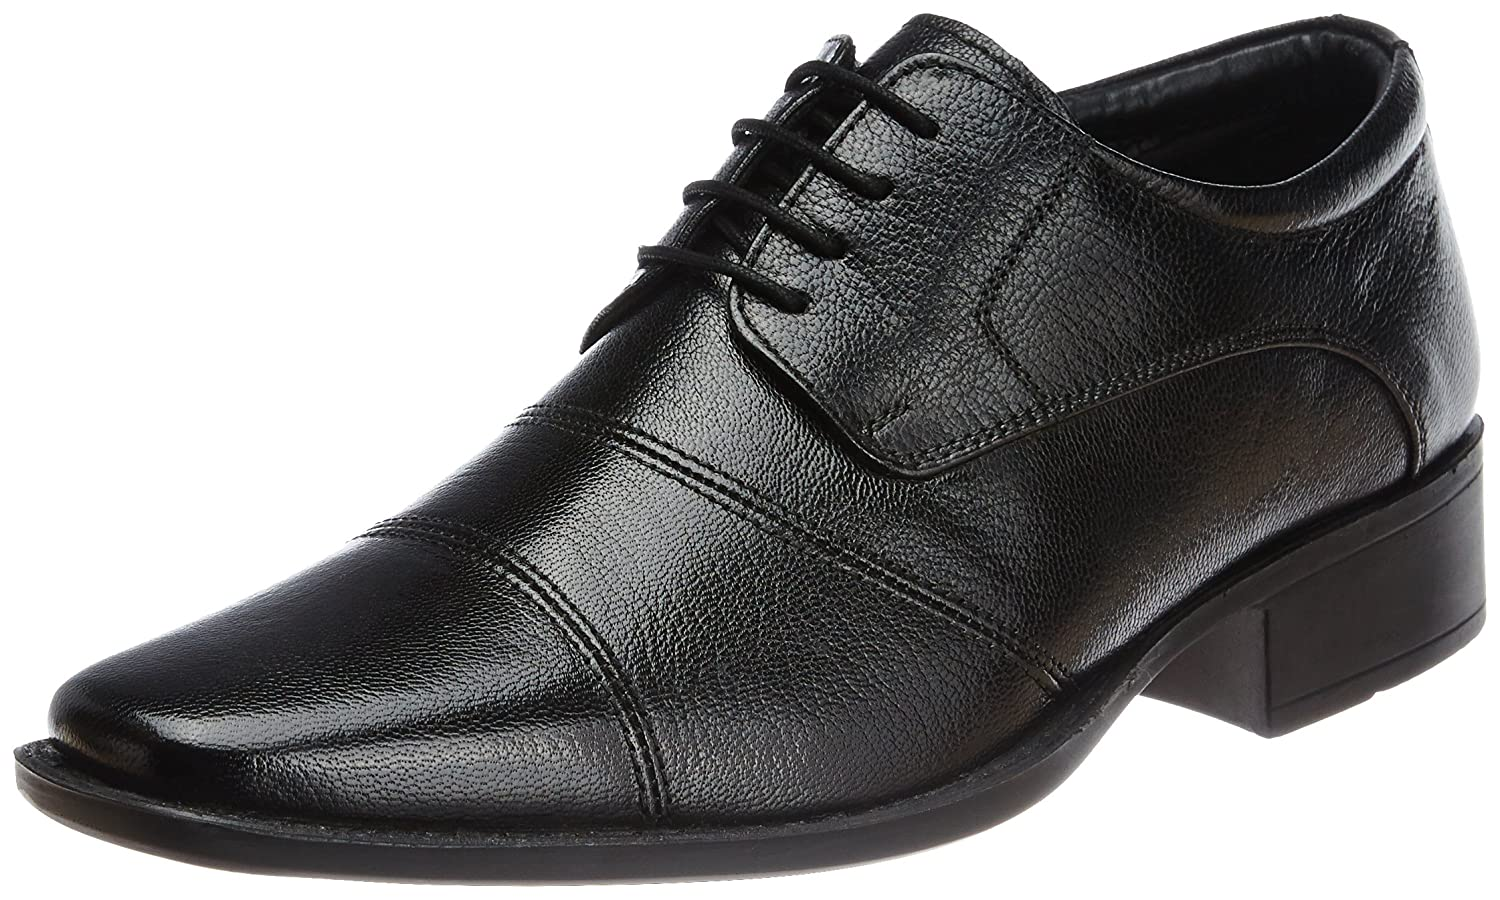 Best Price Hush Puppies Shoes